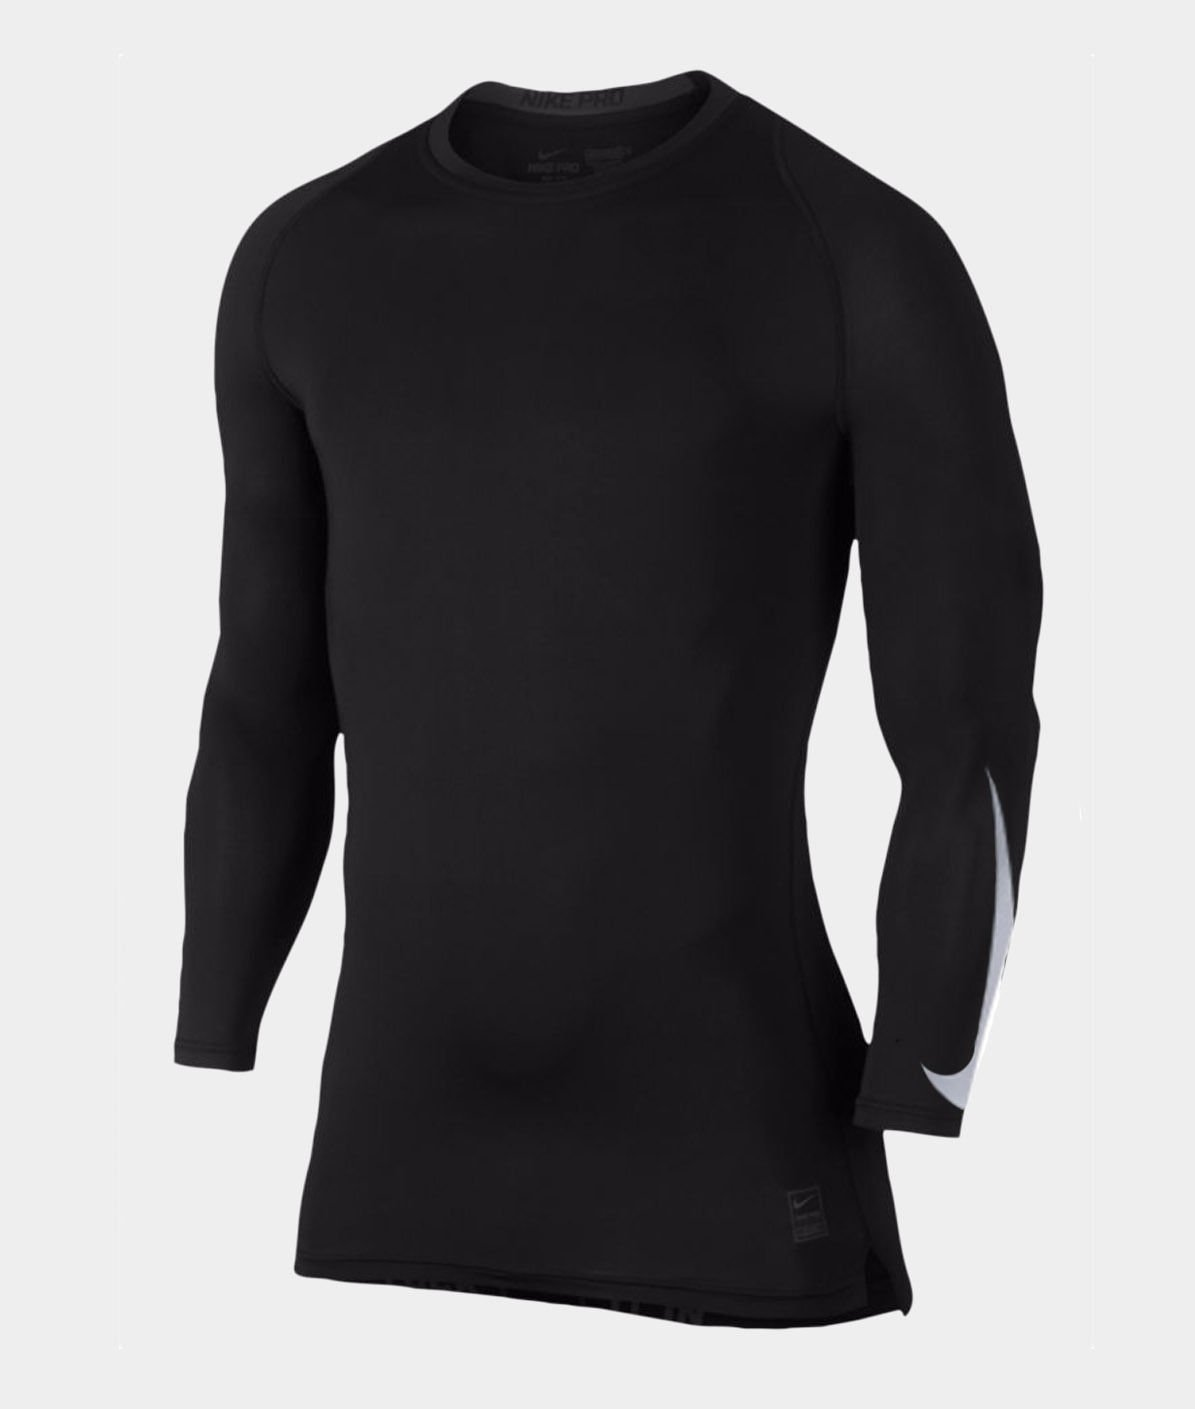 273a7fee4 Get Quotations · Nike Men s Pro Combat Long Sleeve Compression Shirt Black  White